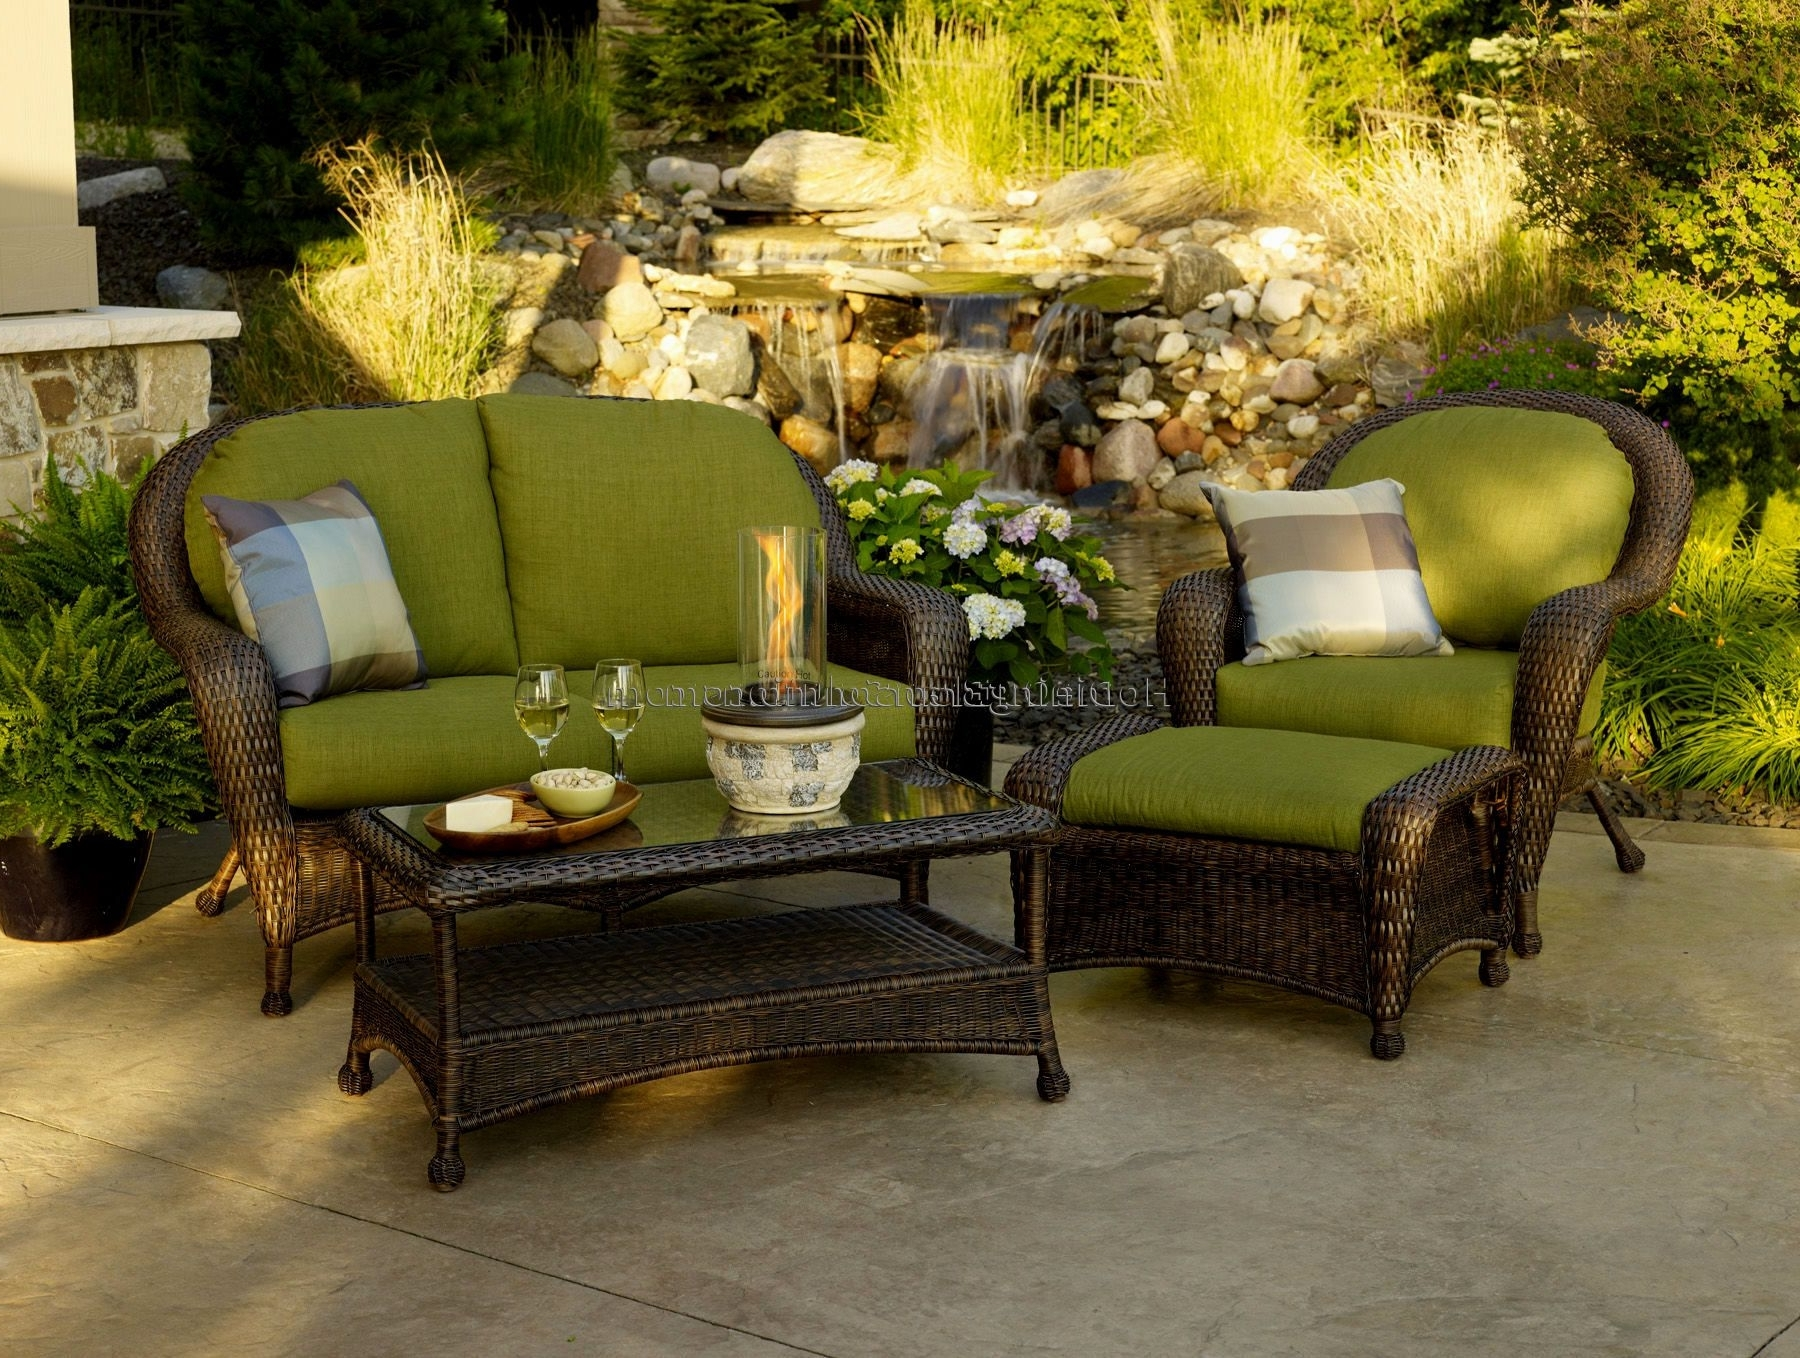 Pier One Patio Conversation Sets Regarding Famous Pier One Outdoor Furniture Reviews – Best Office Furniture Check (View 10 of 15)